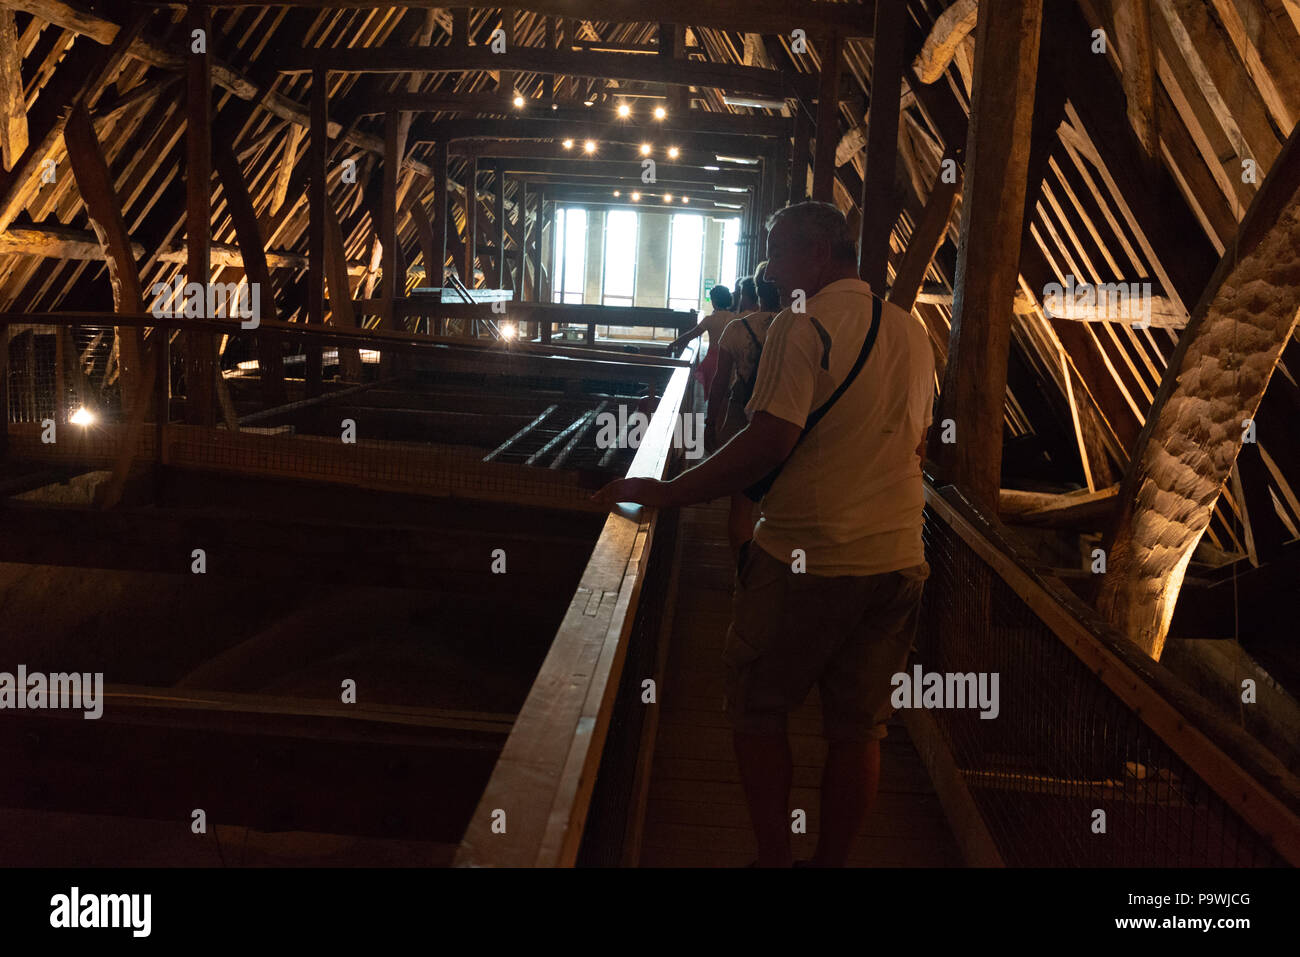 Inside the roof space of Salisbury Cathedral, Wiltshire, England, UK with ancient timbers visible on the tower tour. - Stock Image